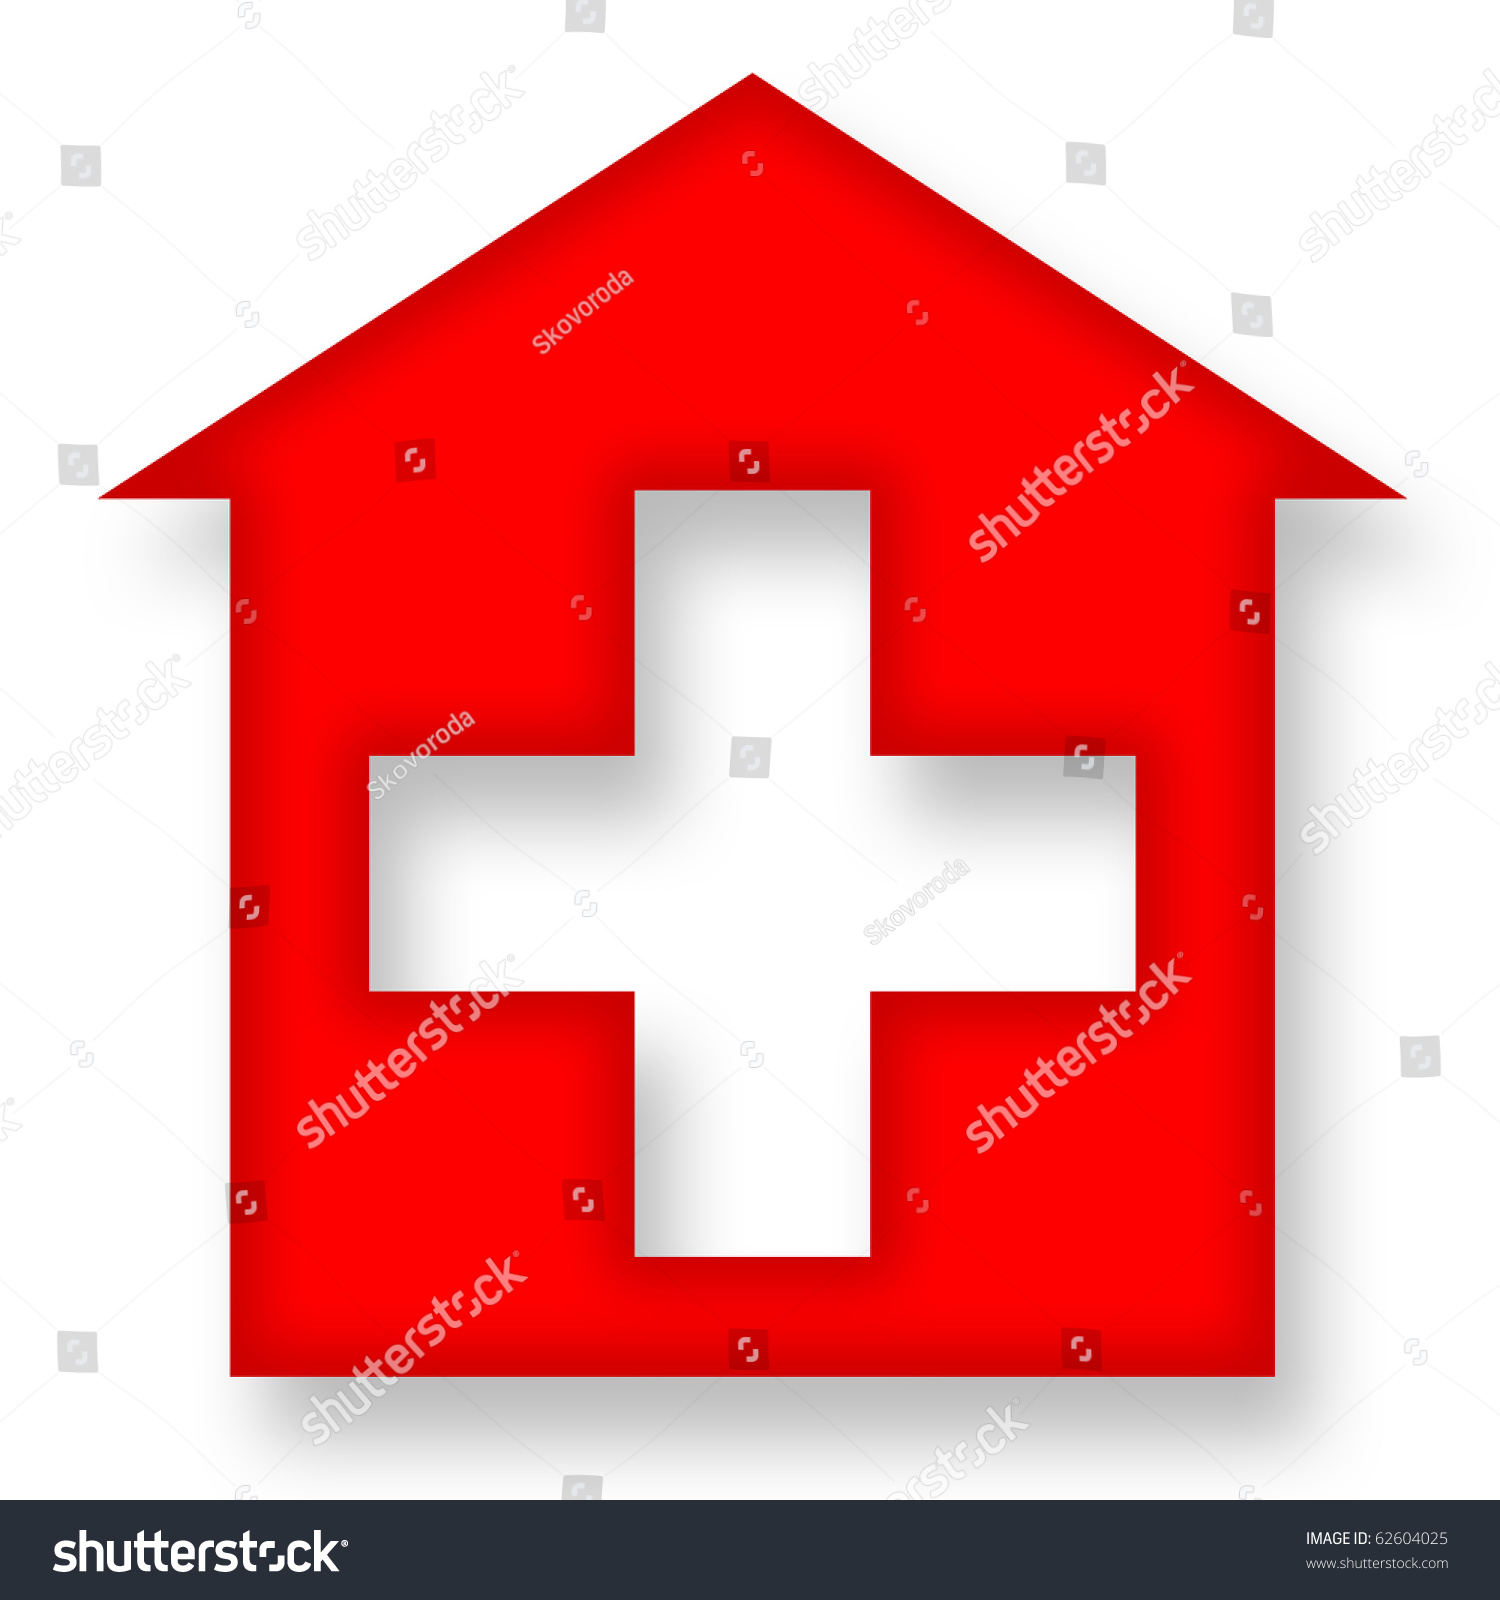 Swiss bank symbol choice image symbol and sign ideas swiss bank symbol choice image symbol and sign ideas medical icon hospital symbol swiss home lager buycottarizona Image collections